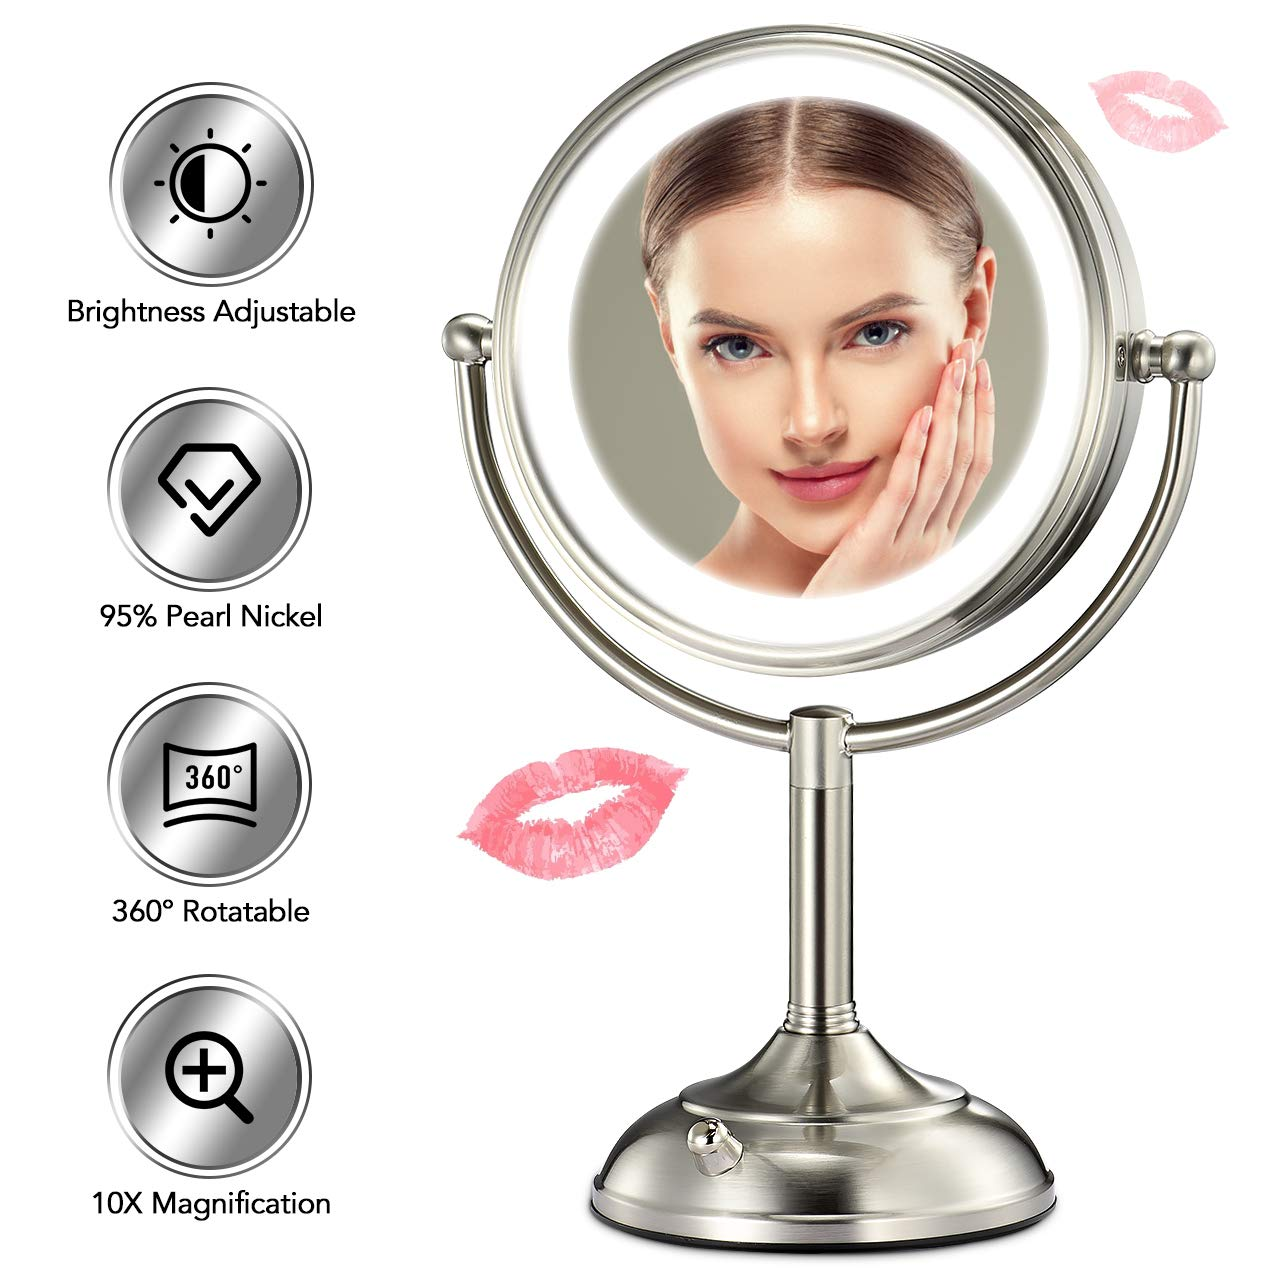 Professional 8.5'' Lighted Makeup Mirror, 10X Magnifying Vanity Mirror with 32 Medical LED Lights, Senior Pearl Nickel Cosmetic Mirror,Brightness Adjustable(0-1100Lux) Desk Lamp Night Light Alternative by VESAUR